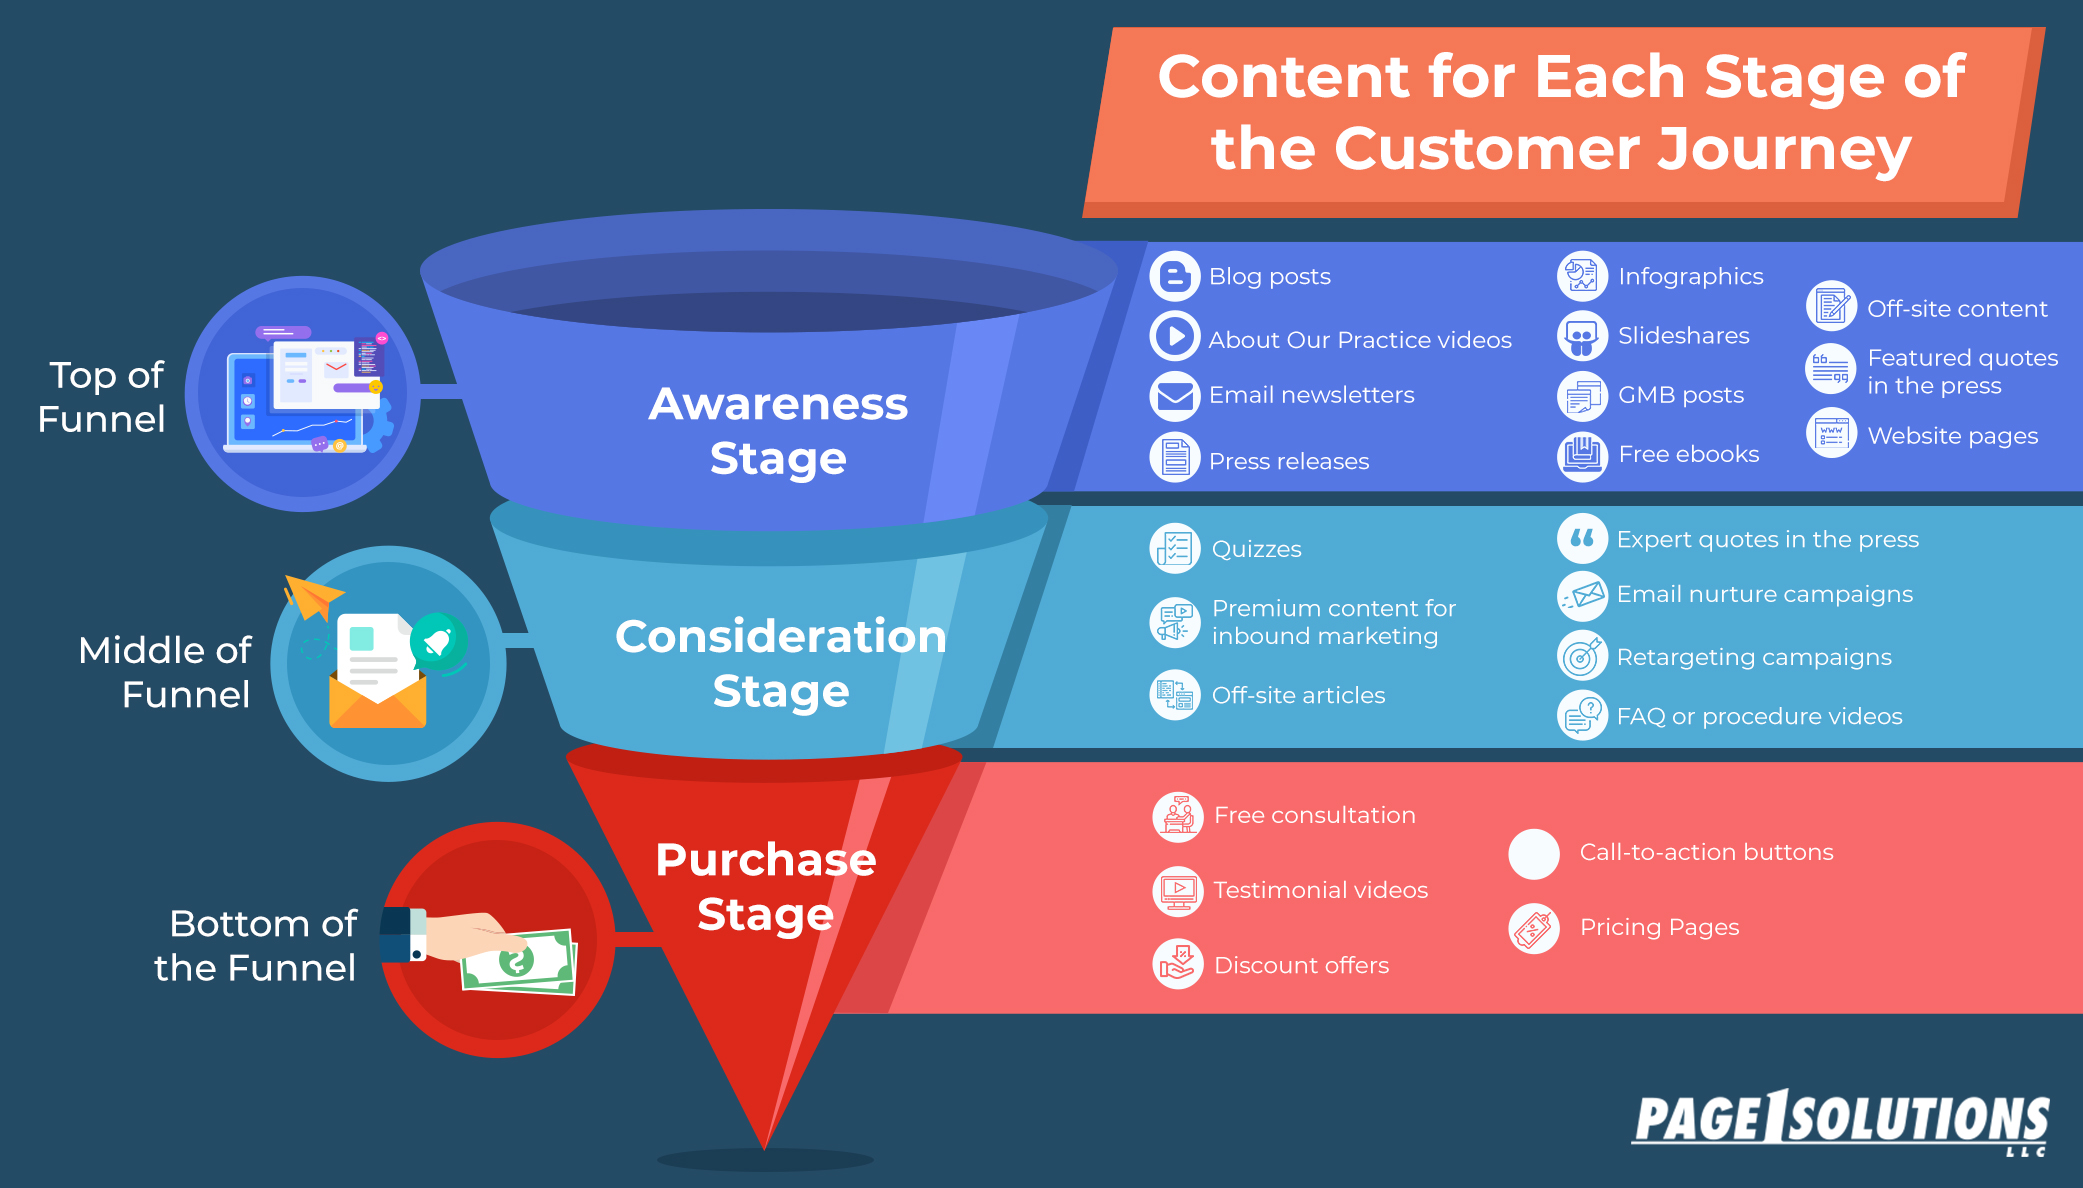 Infographic: Content for Each Stage of the Customer Journey